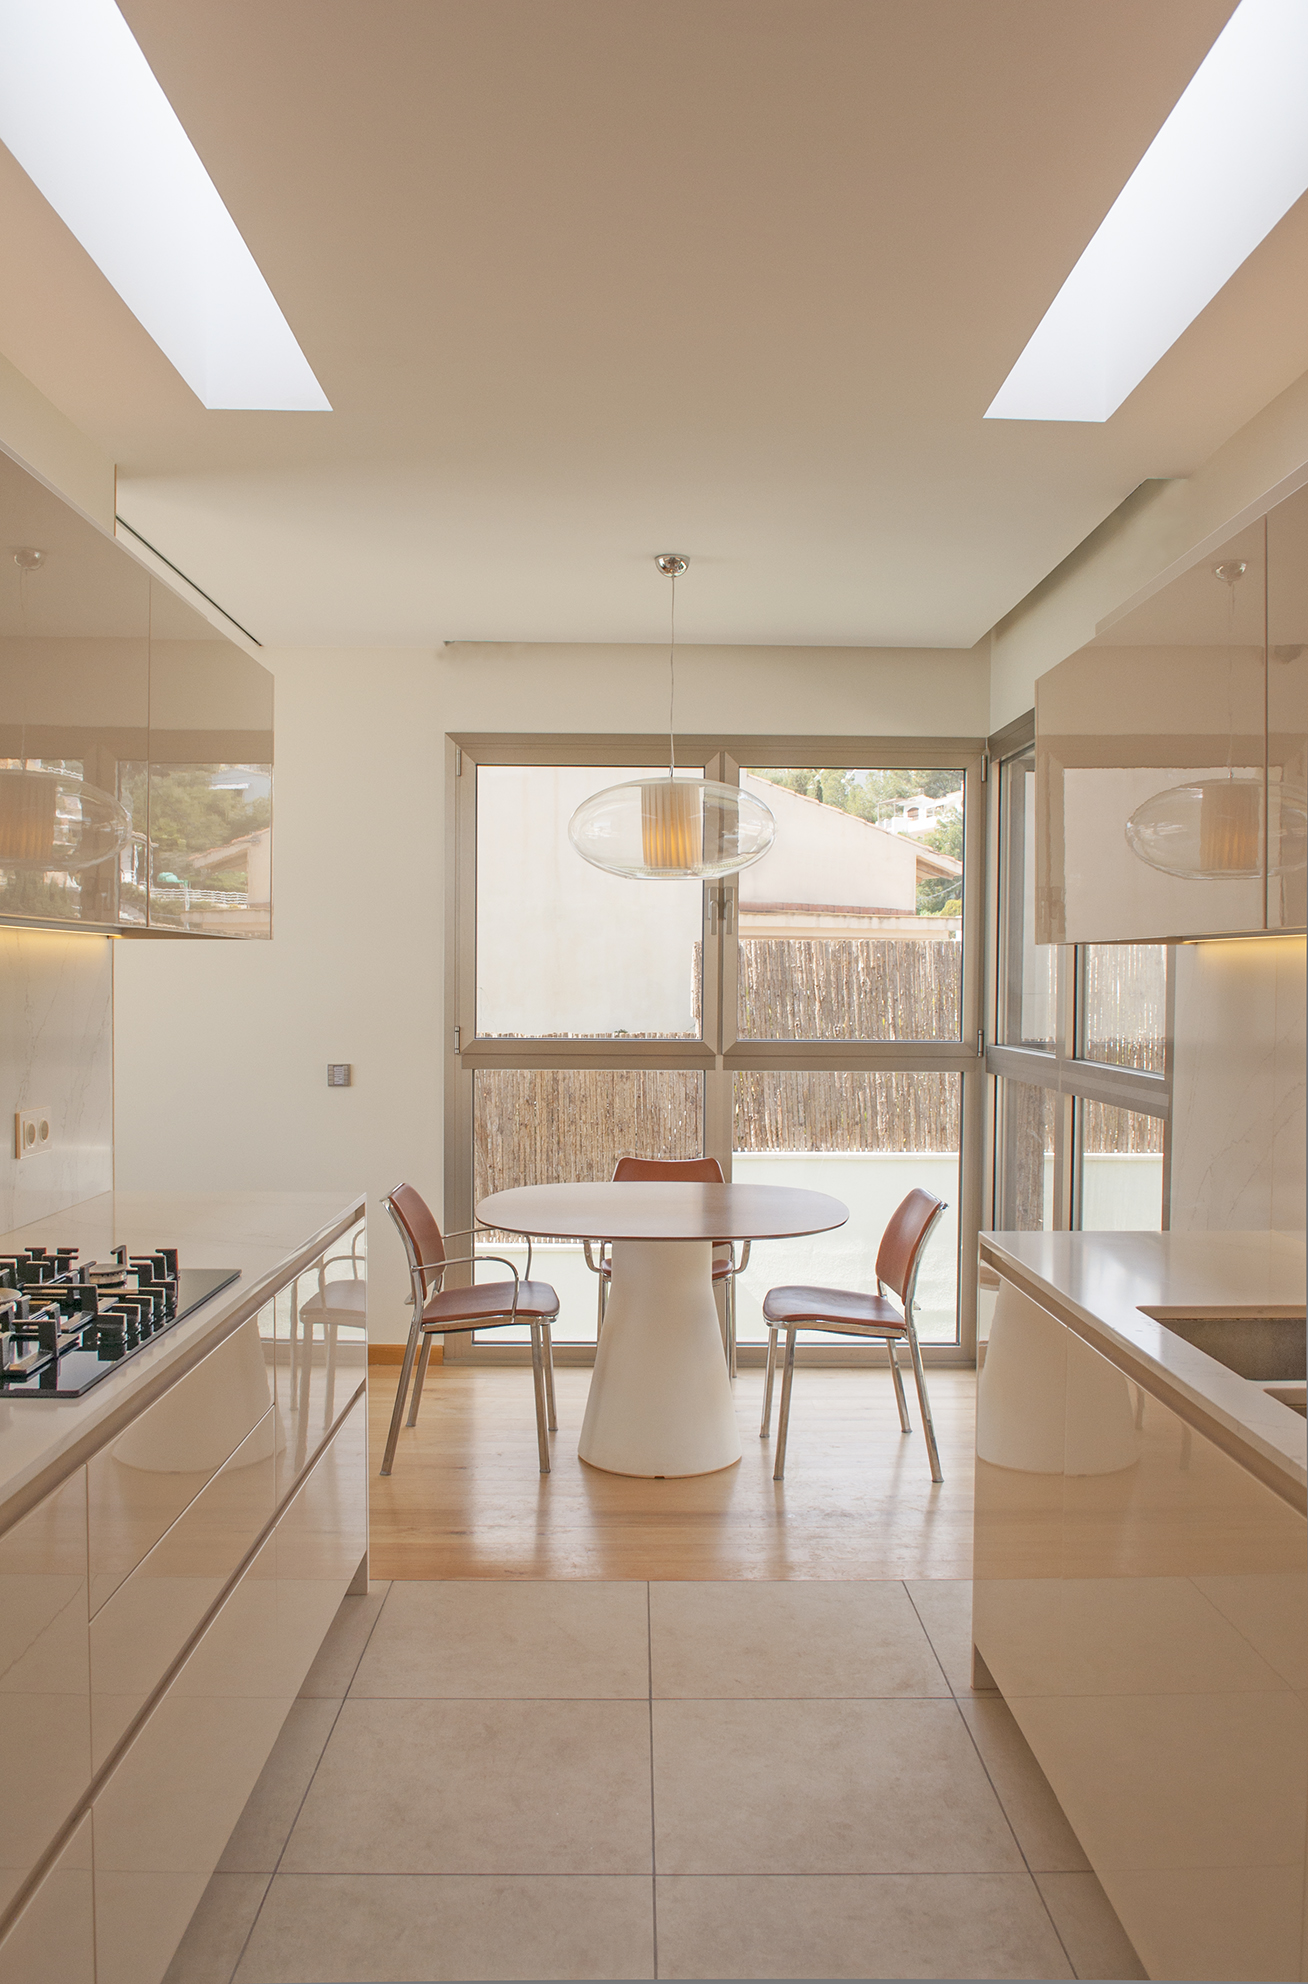 21-rardo-architects-houses-in-sitges-diseno-interior-comedor-cocina-iluminacion-luces